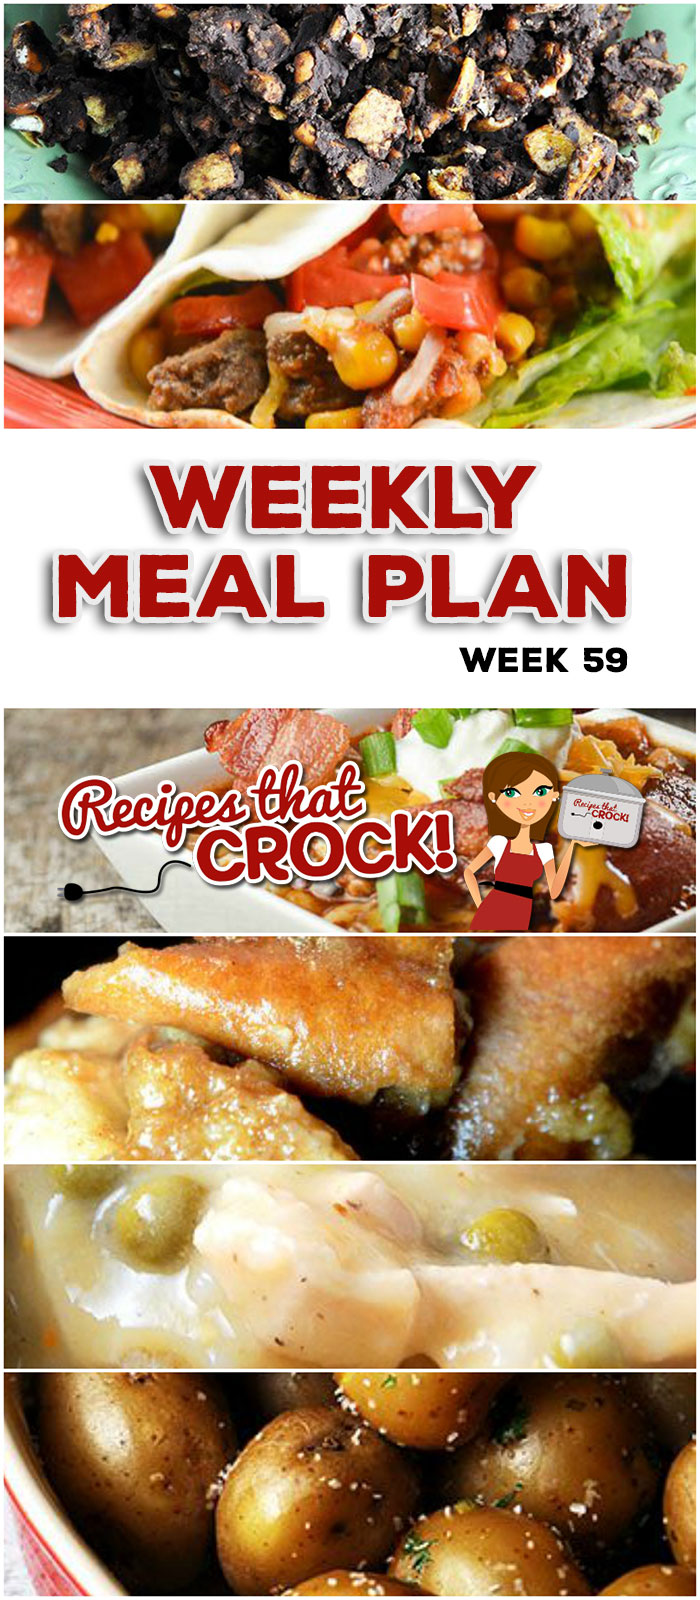 This week's weekly menu features Crock Pot Chicken Pot Pie, Crock Pot Beefy Tex Mex Tacos, Meat Lover's Crock Pot Chili, Easiest Crock Pot Pulled Pork Ever, Crock Pot Parsley Potatoes, Crock Pot Pizza Tater Tot Casserole, Peaches and Cream Overnight Oatmeal, Crock Pot Salty Sweet Crunchy Goodness and Crock Pot Pumpkin Pie French Toast Casserole.